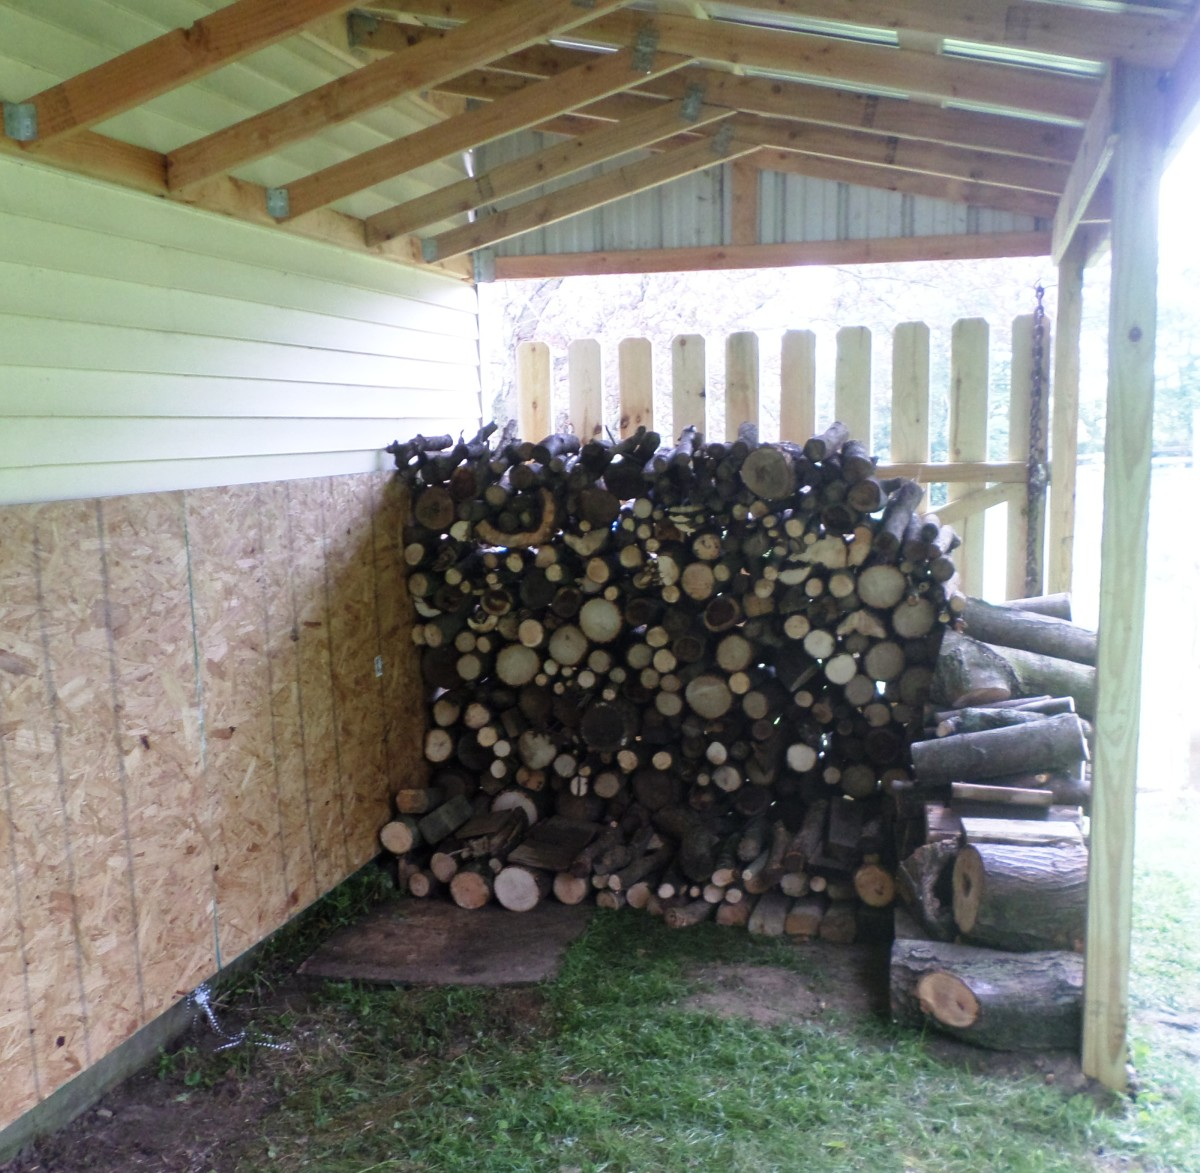 First load of firewood under the shed. Only about 19 more to go.